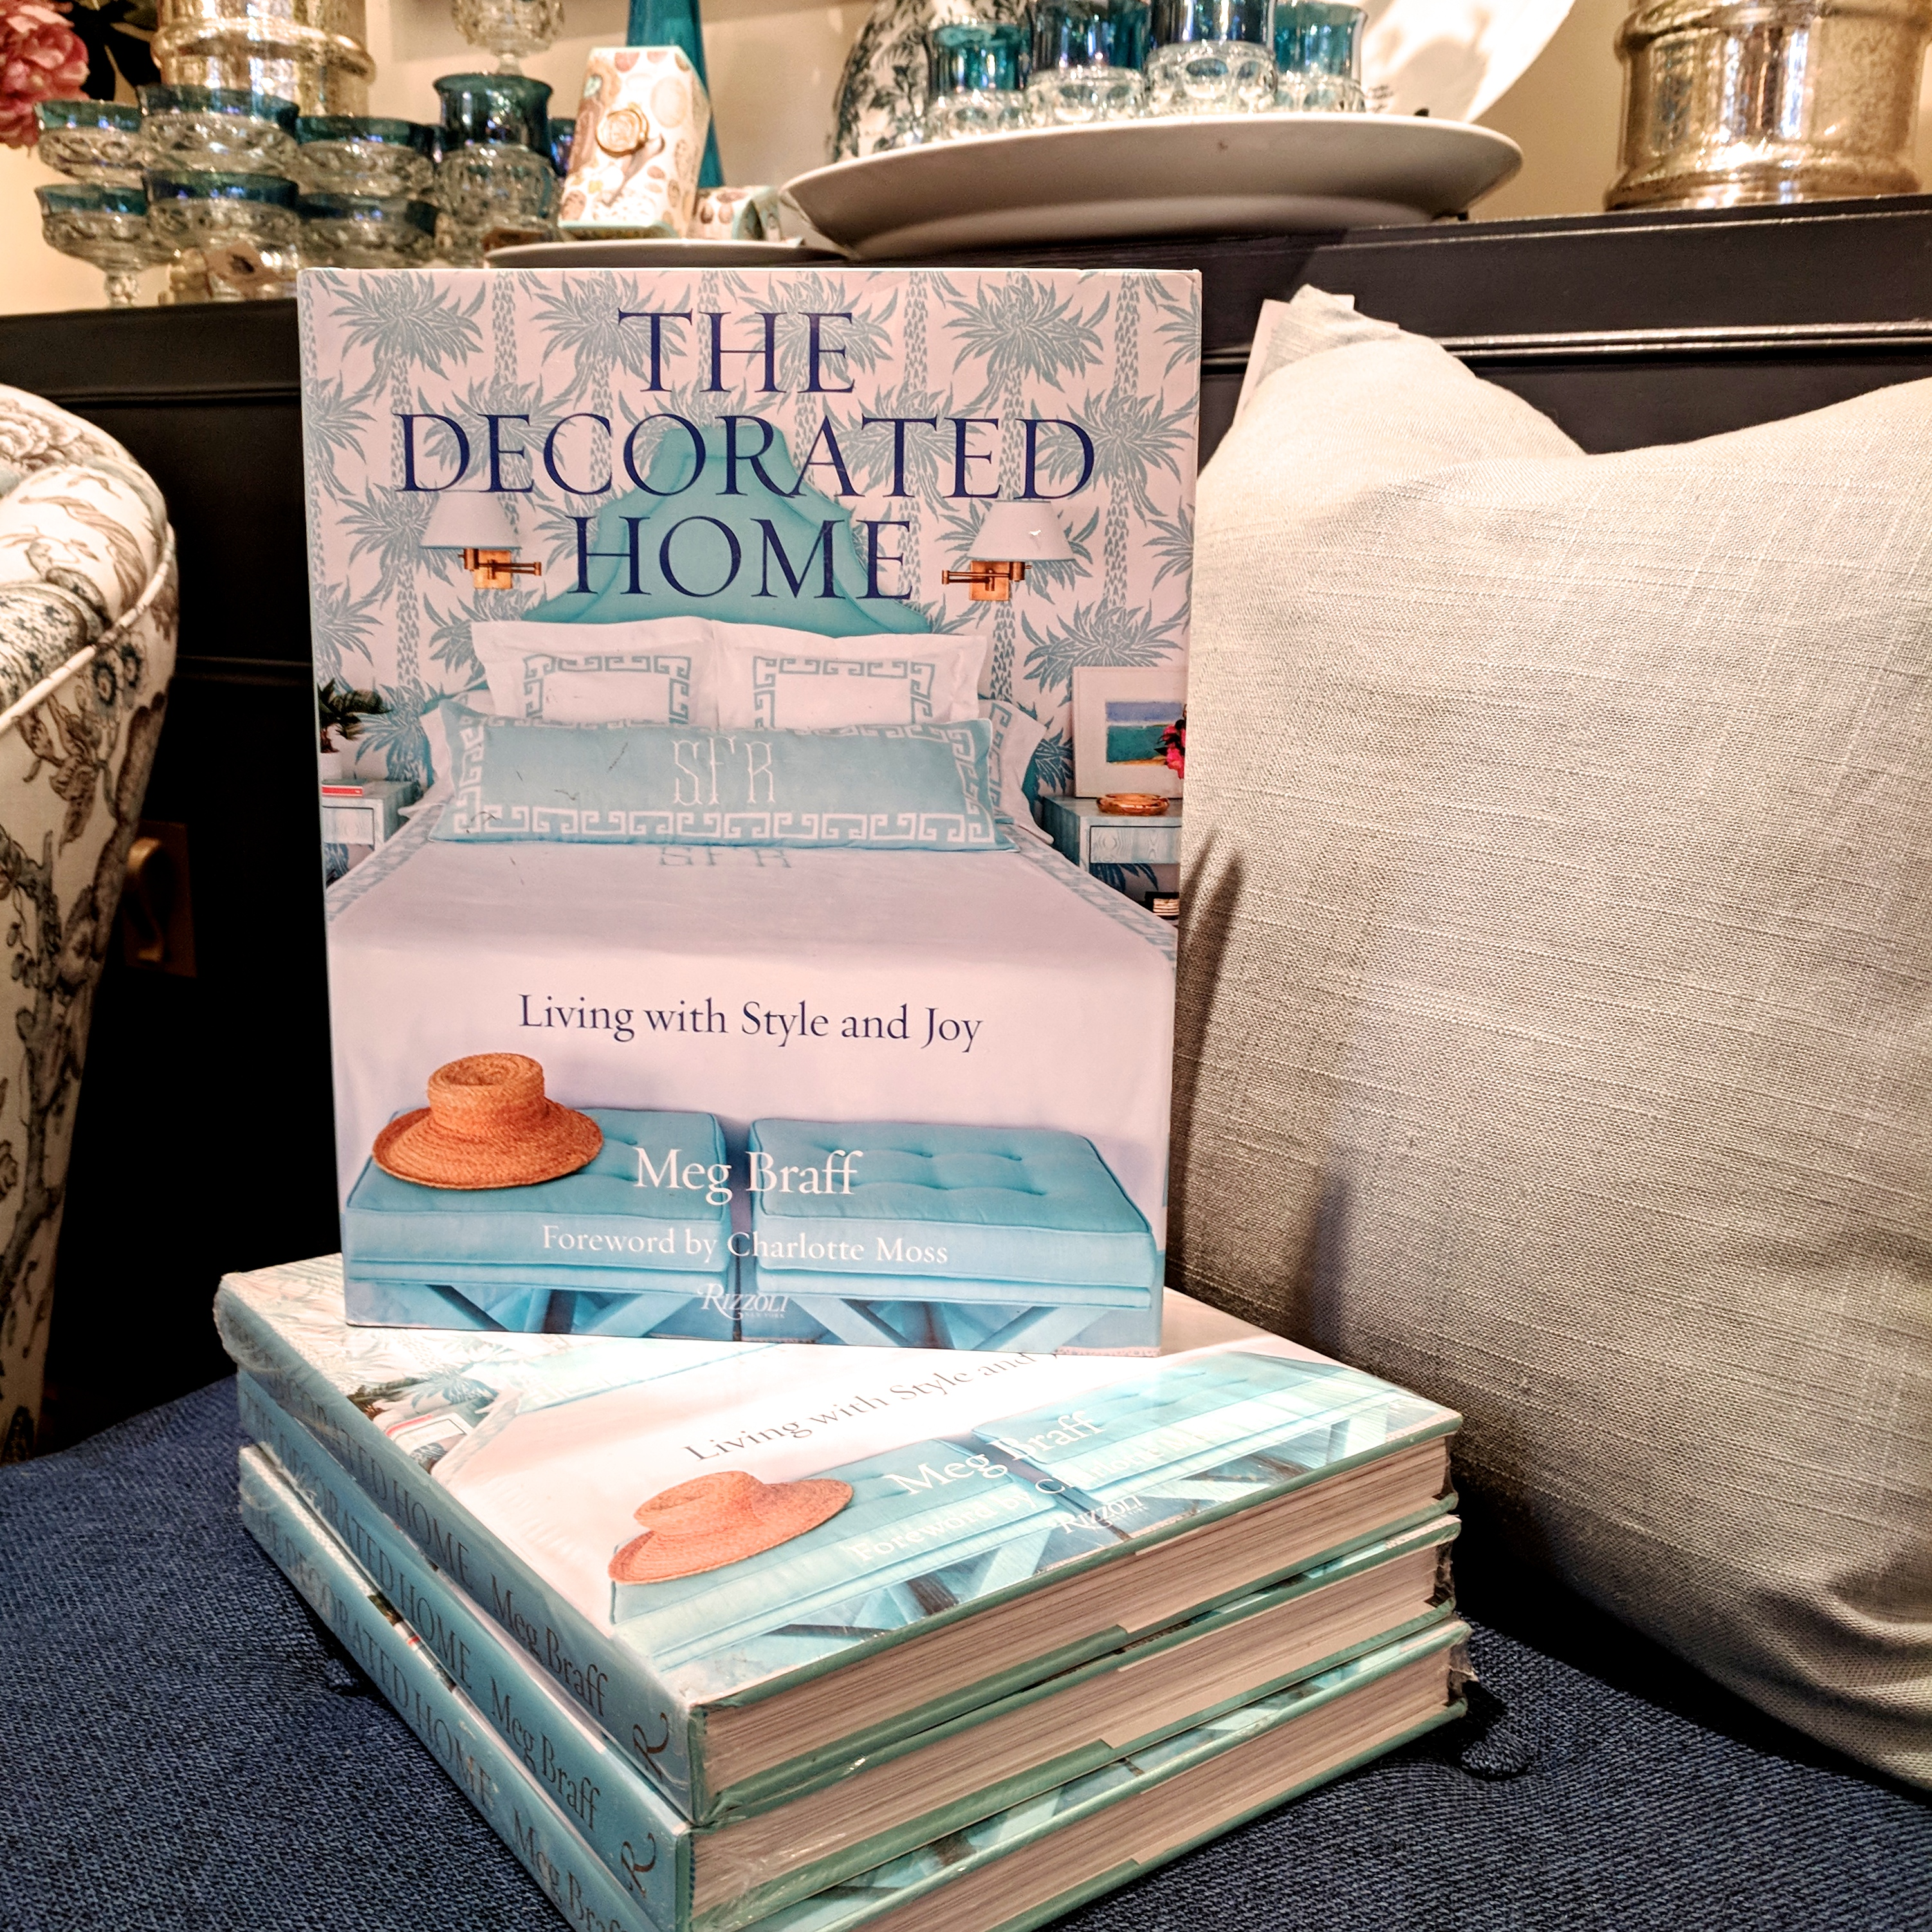 The Decorated Book by Meg Braff